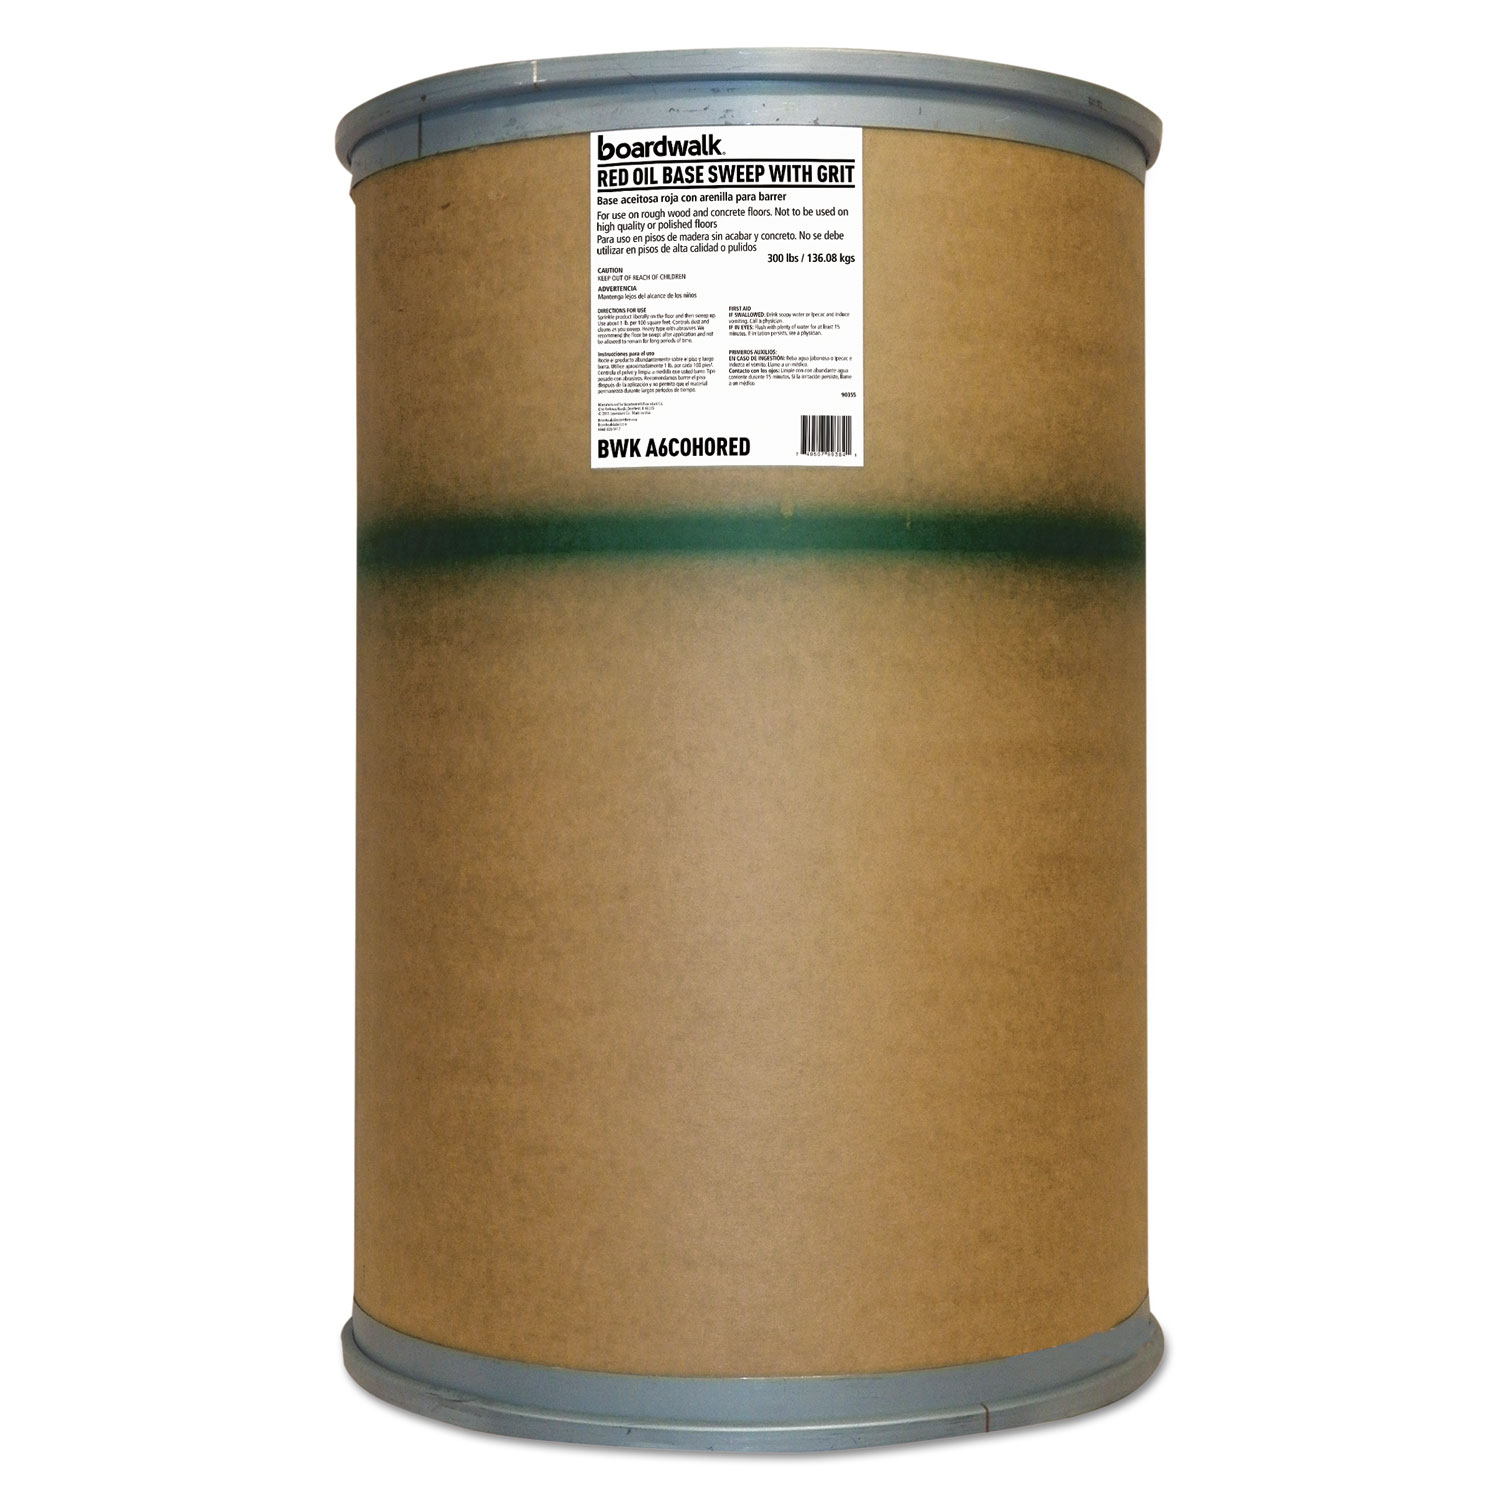 Oil-Based Sweeping Compound By Boardwalk® BWKA6COHORED